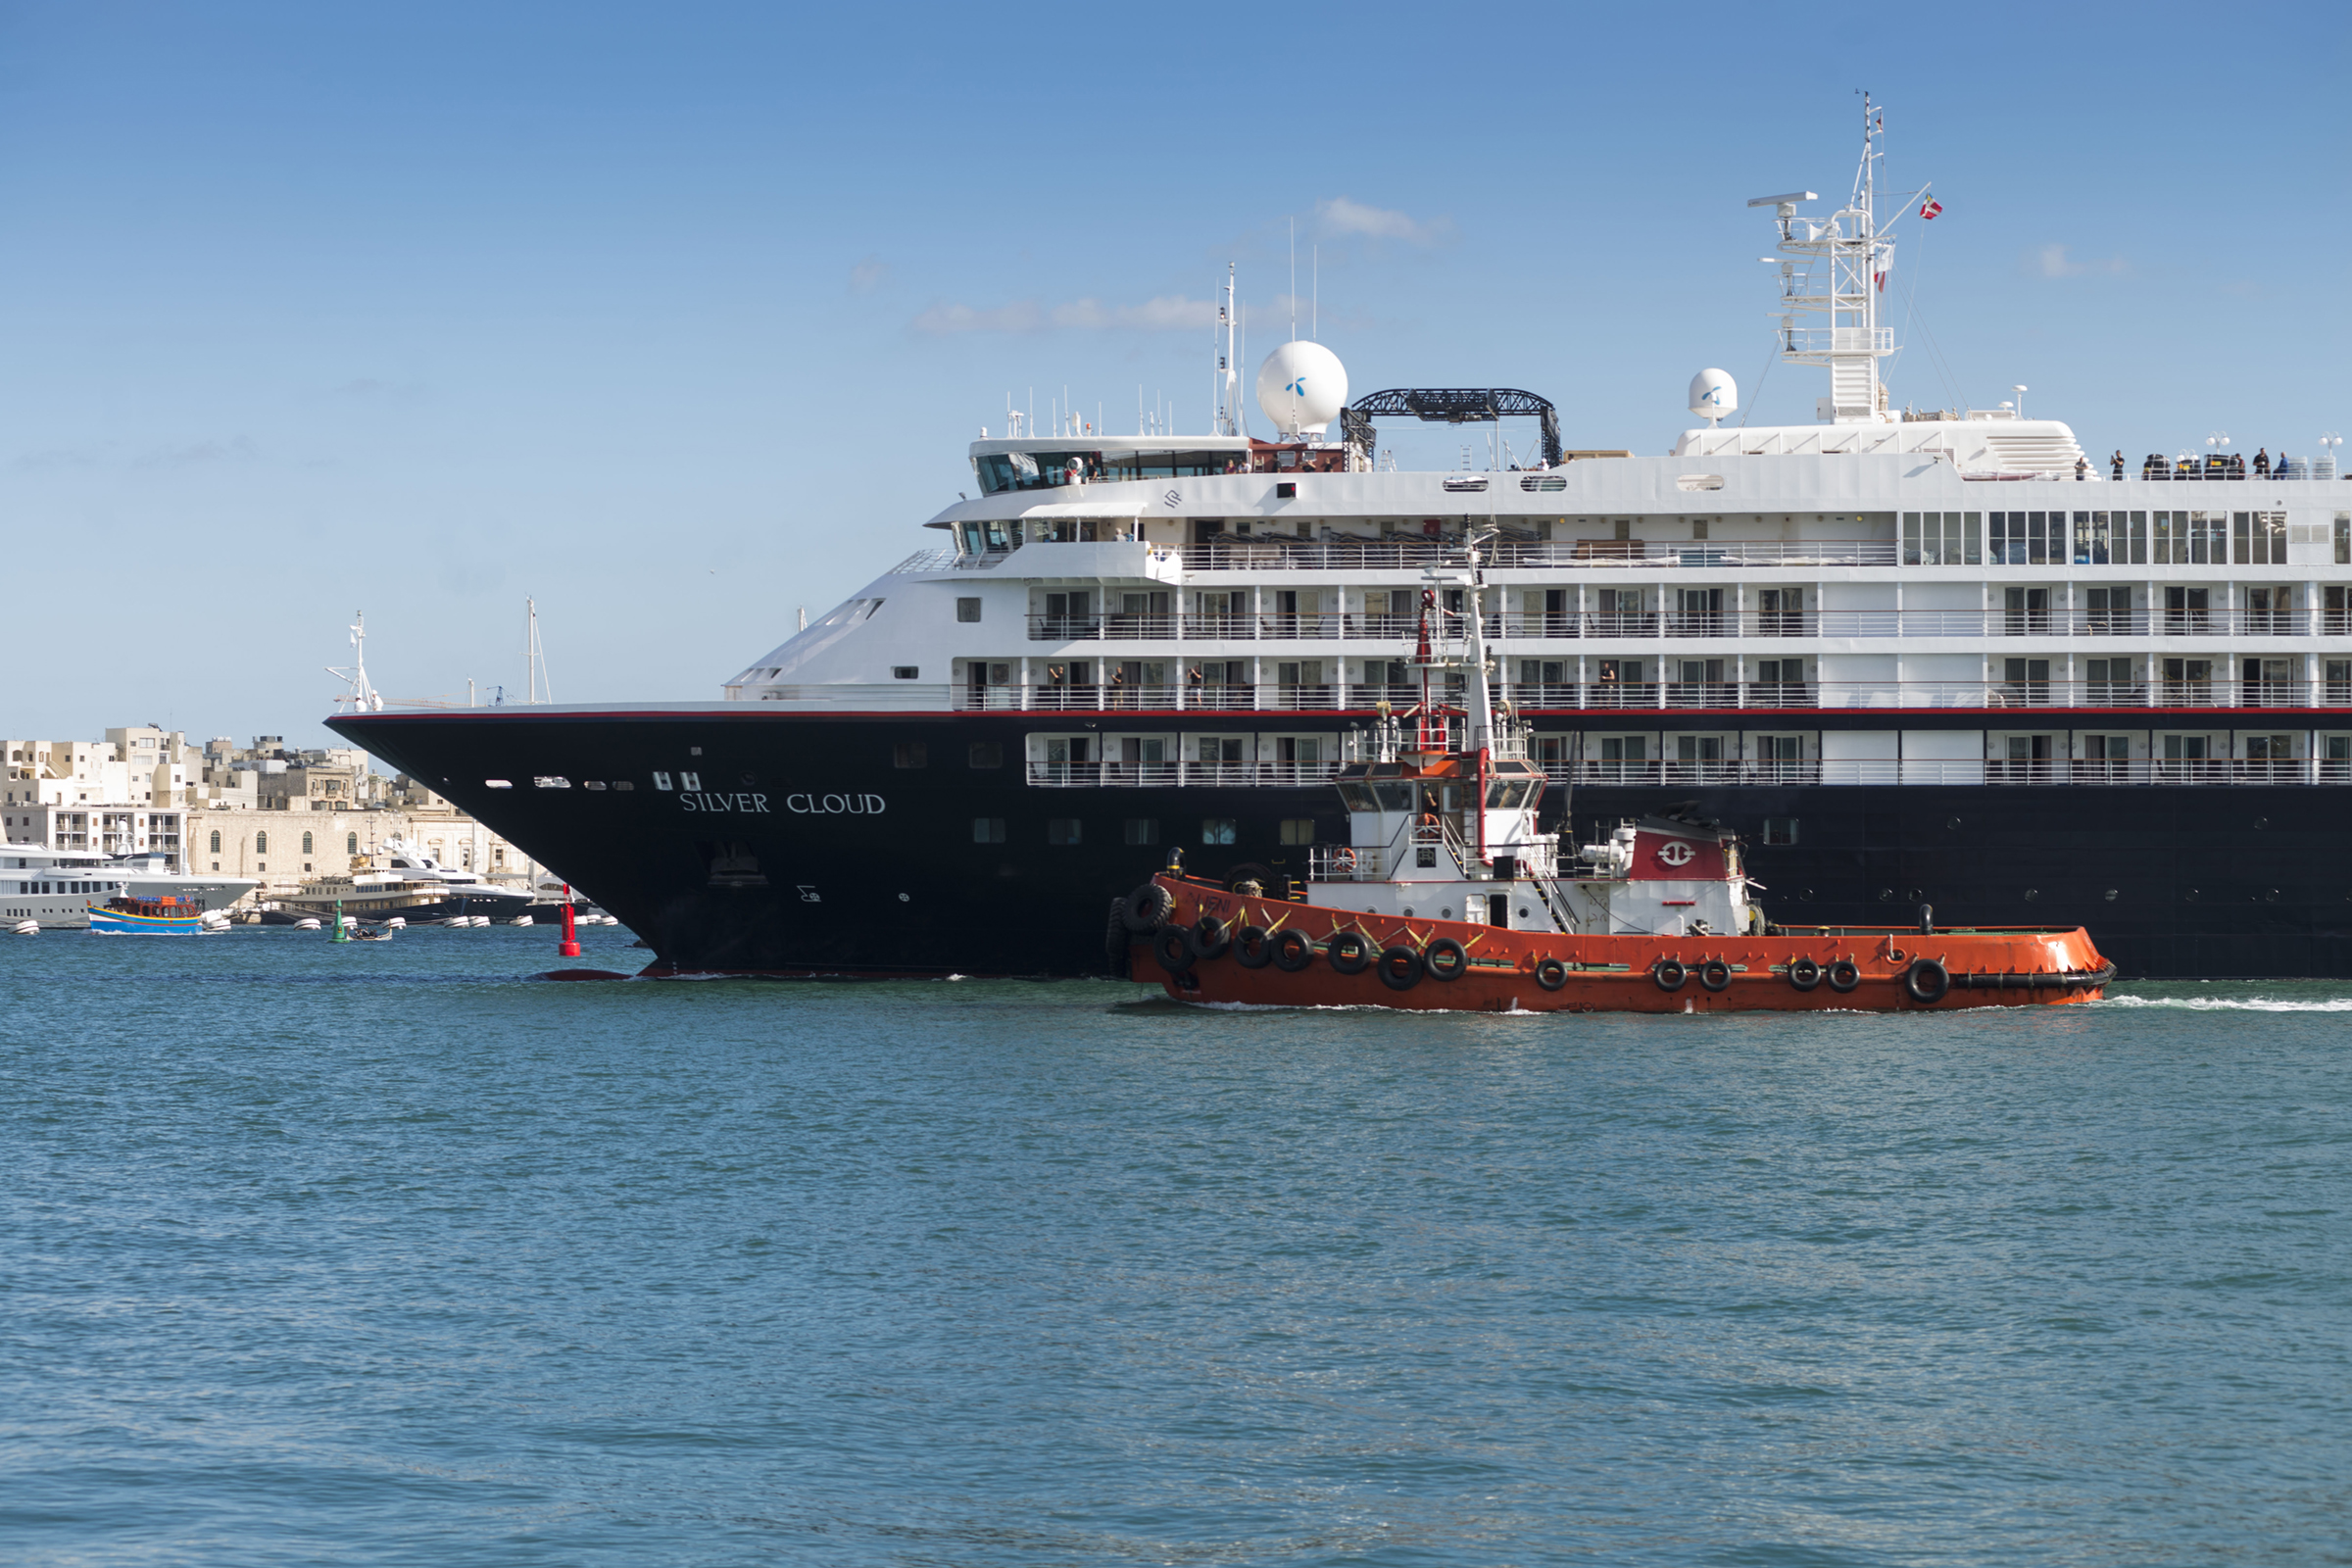 Silver Cloud cruise ship remade into luxury ice rover   CNN Travel